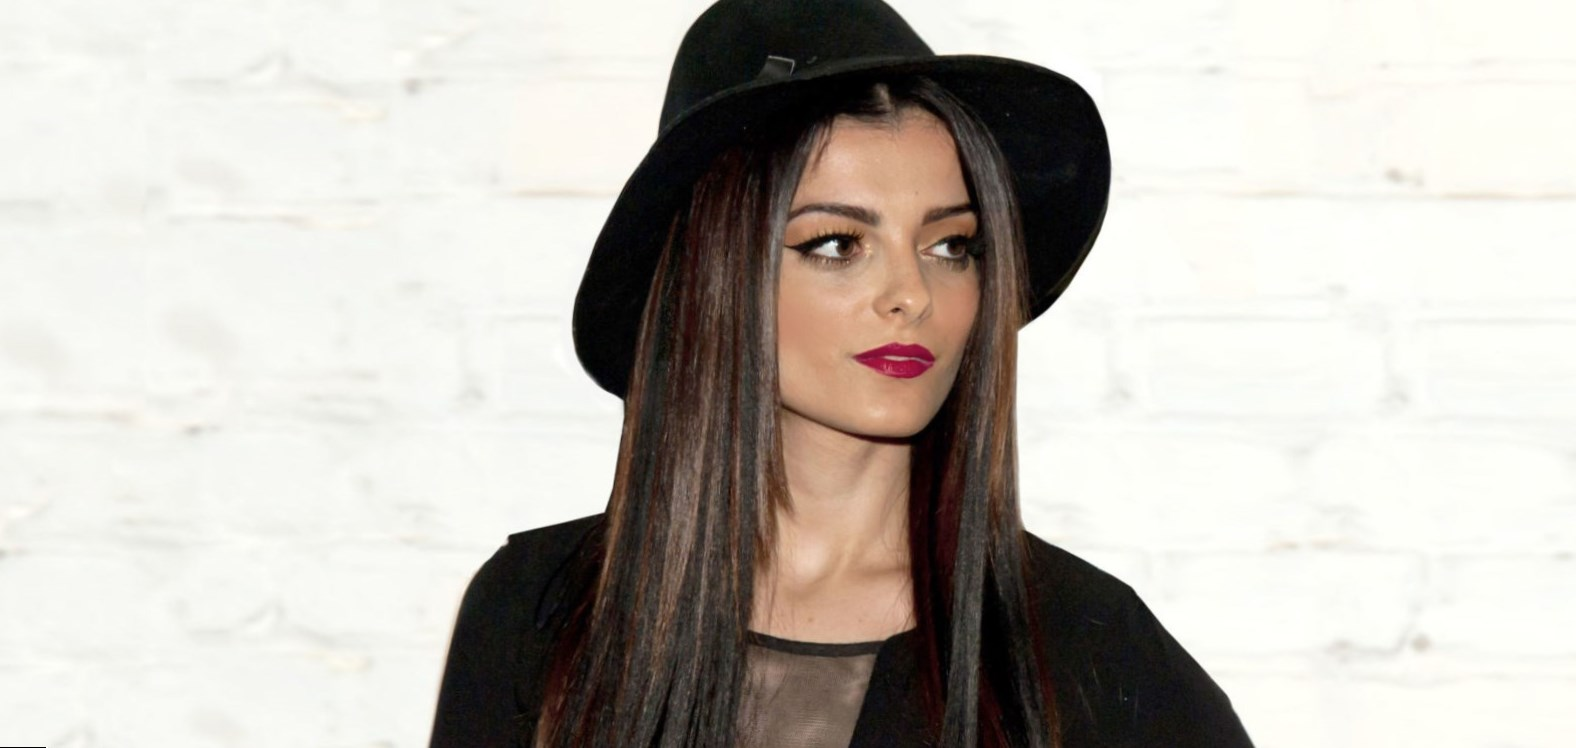 Bebe Rexha - Height, Weight, Age